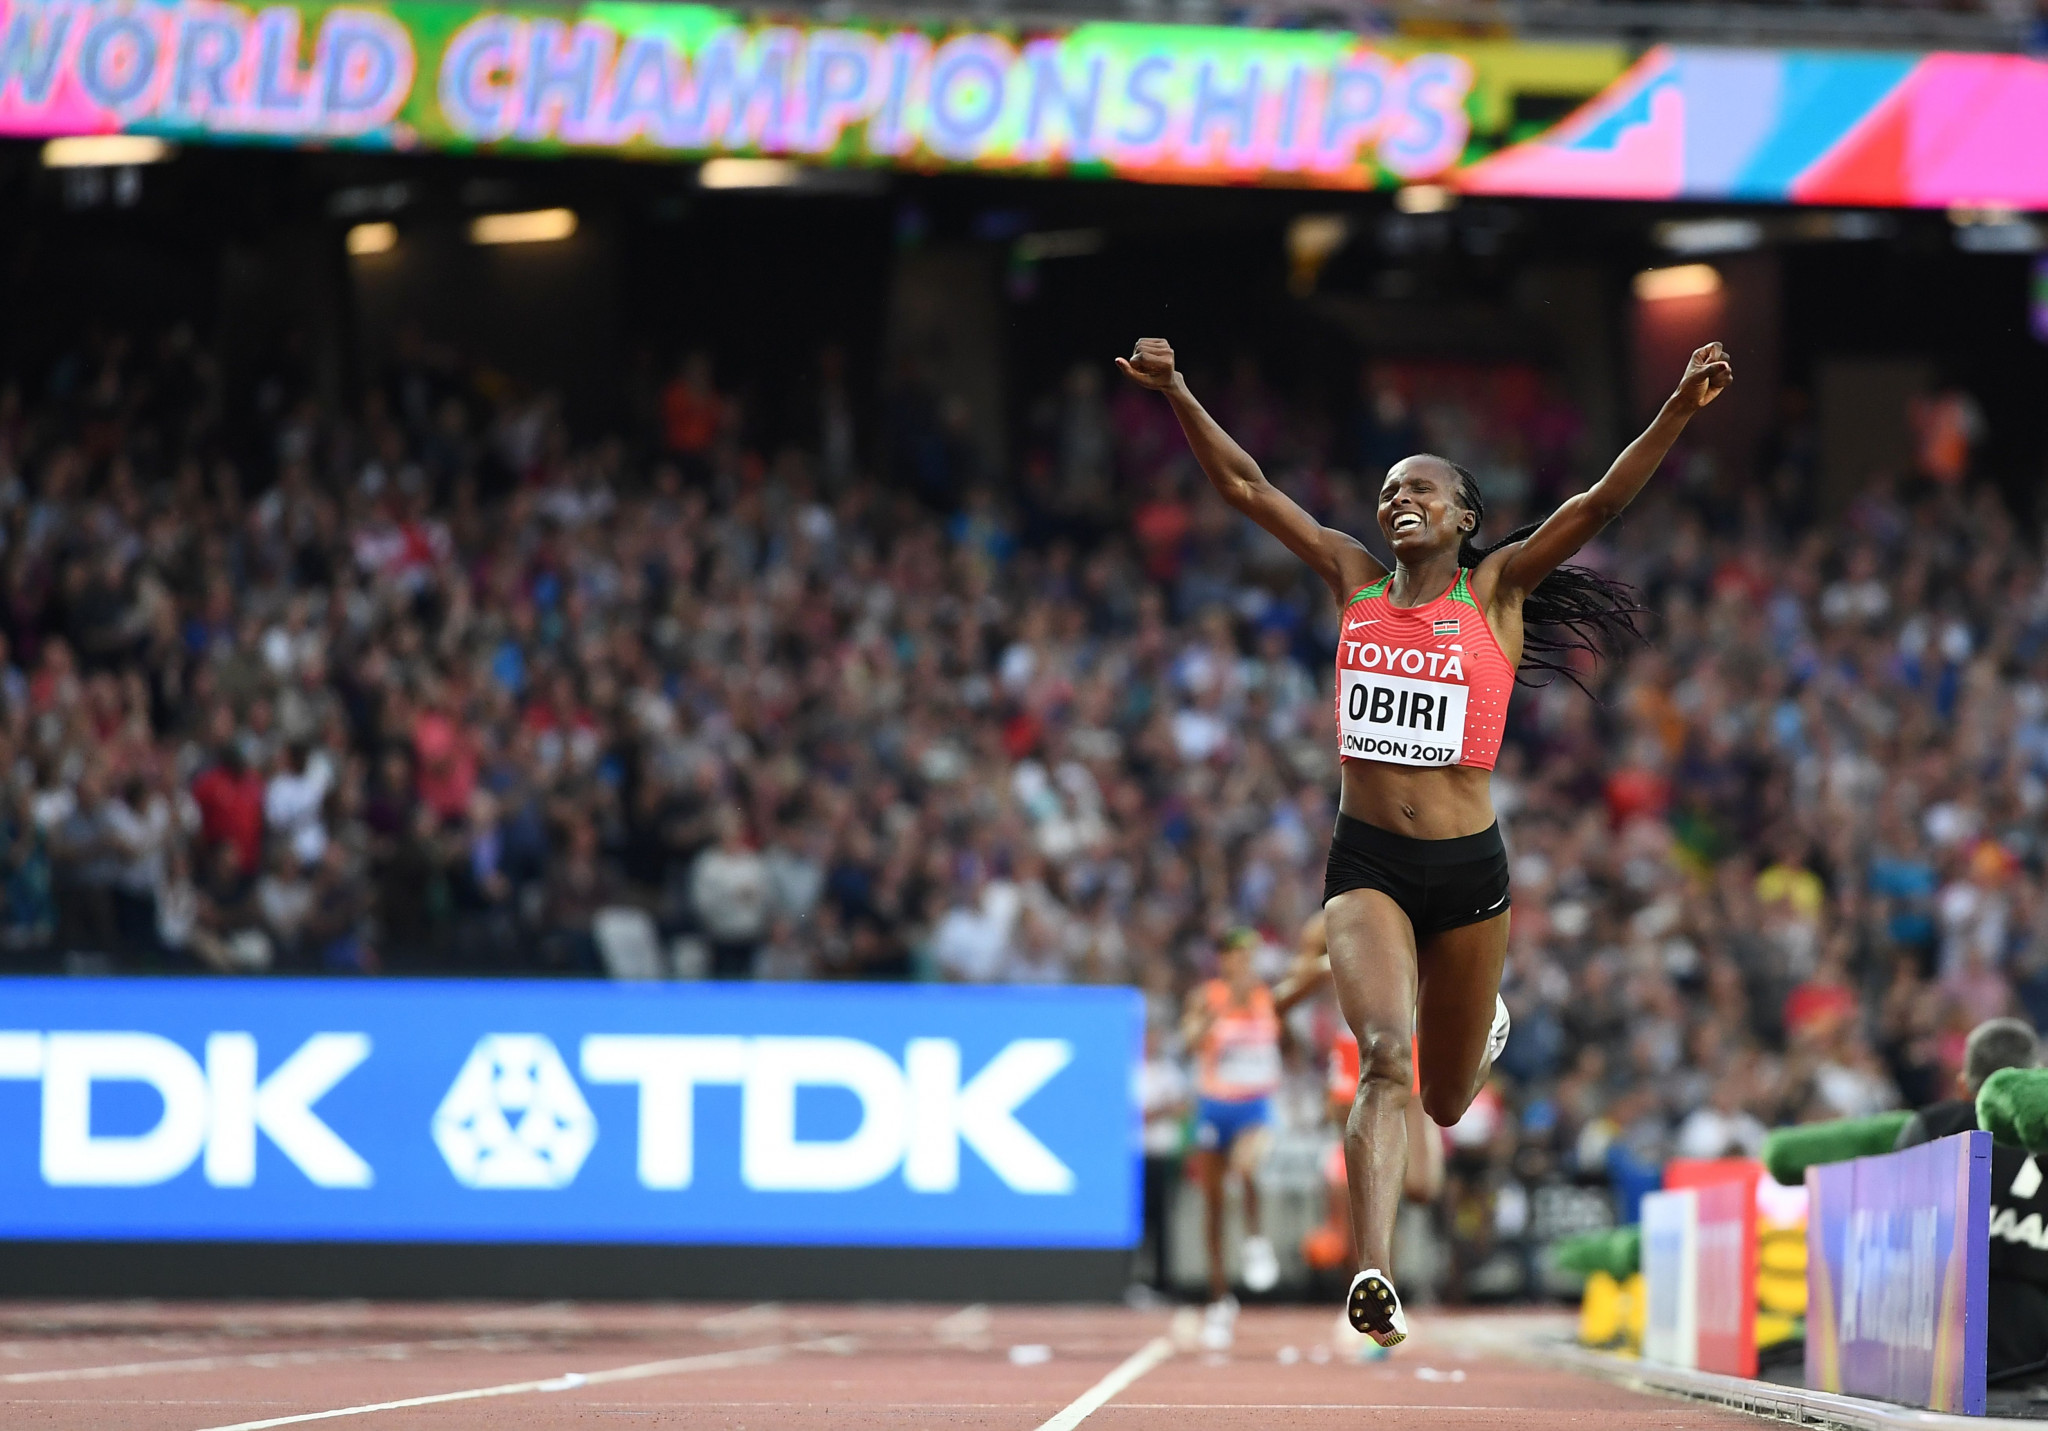 Hellen Obiri won her first outdoor global crown in 2017 by securing victory in the 5,000 metres final at the IAAF World Championships in London ©Getty Images